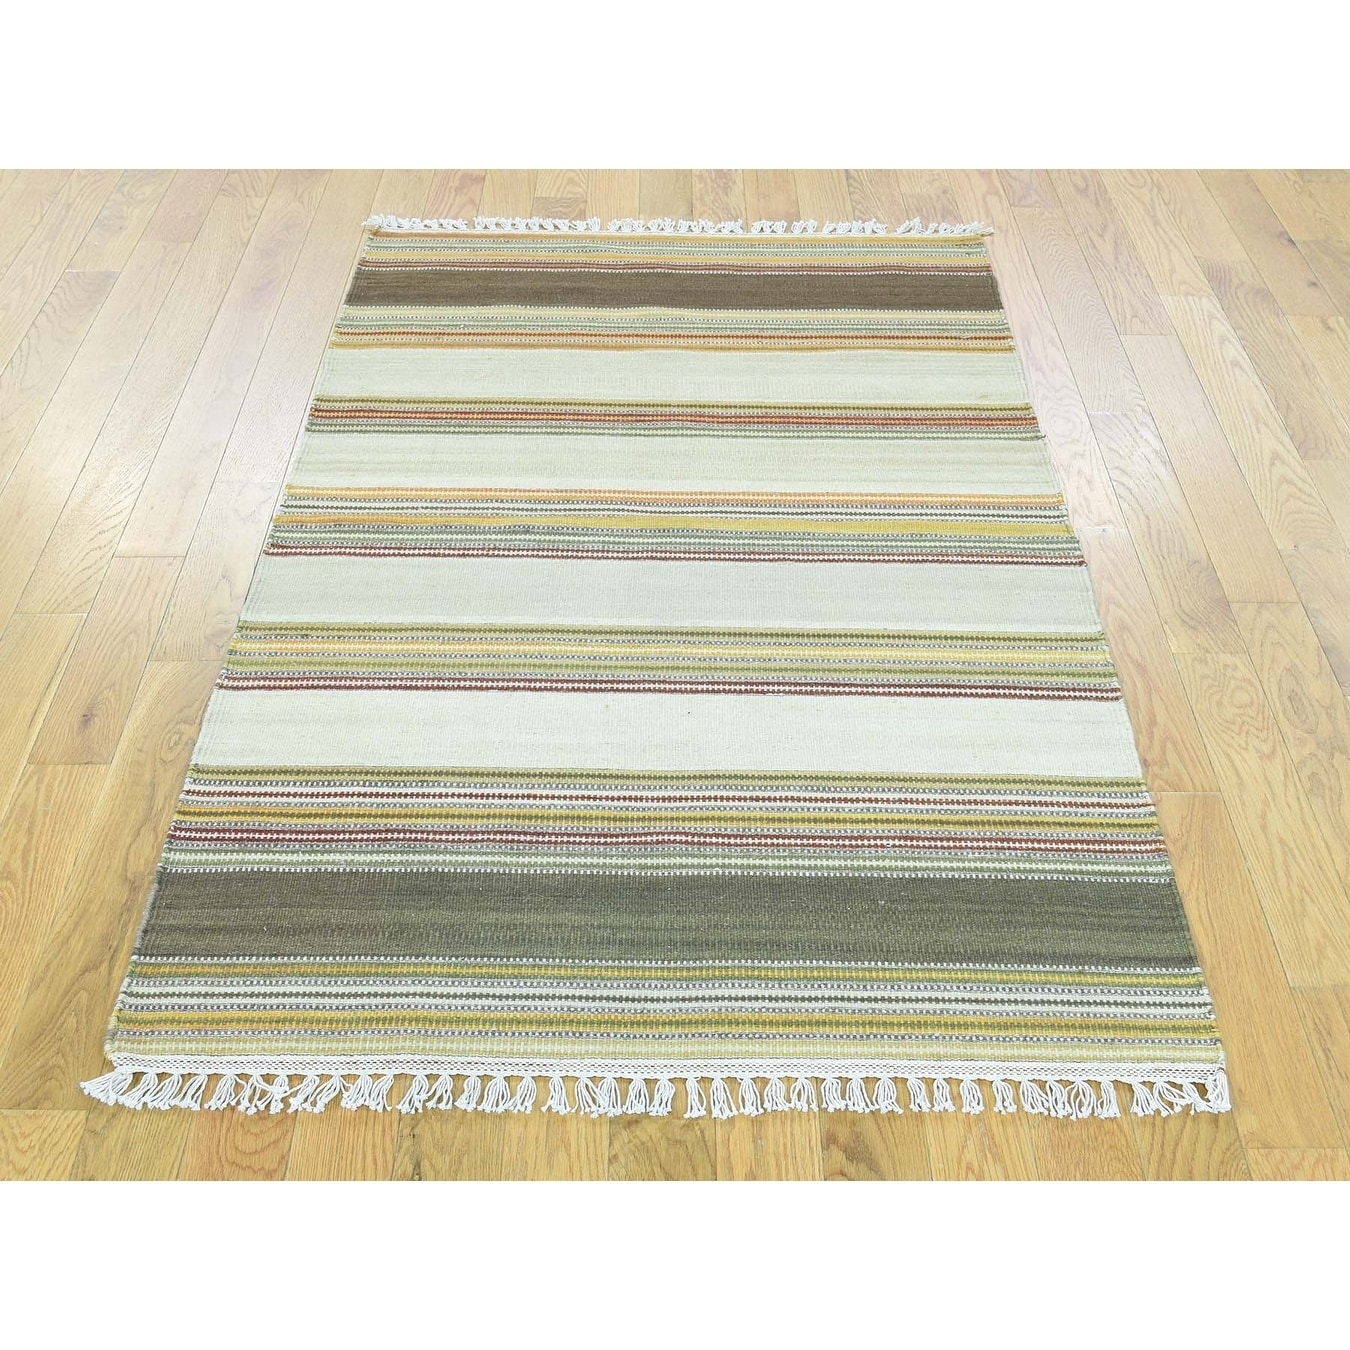 Hand Knotted Multicolored Flat Weave with Wool Oriental Rug - 210 x 51